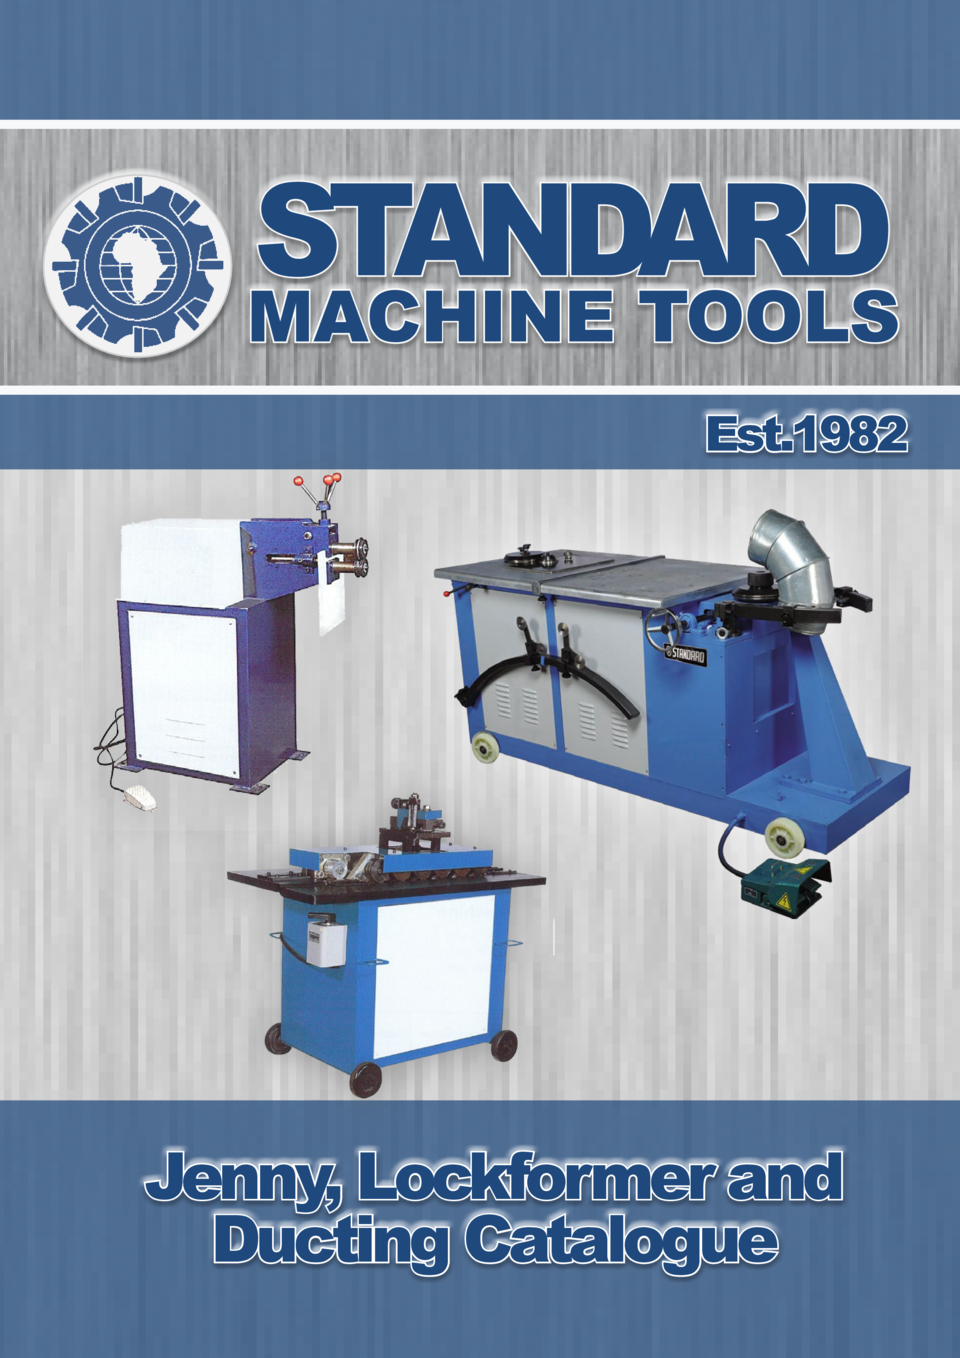 STANDARD  MACHINE TOOLS Est.1982  Jenny, Lockformer and Ducting Catalogue